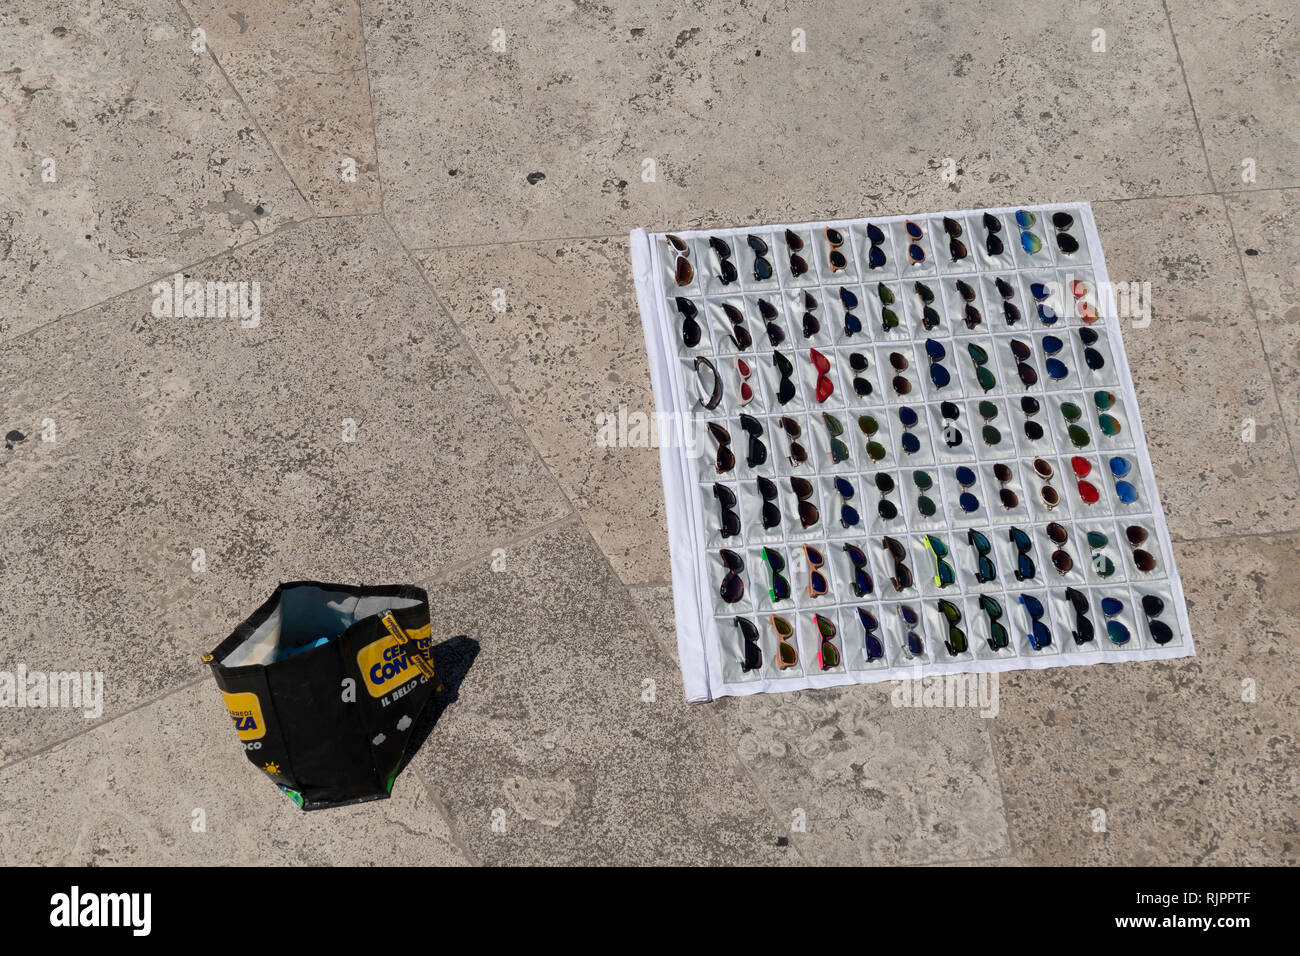 sunglasses, product counterfeiting, display by an illegal street vendor in Rome, Italy - Stock Image